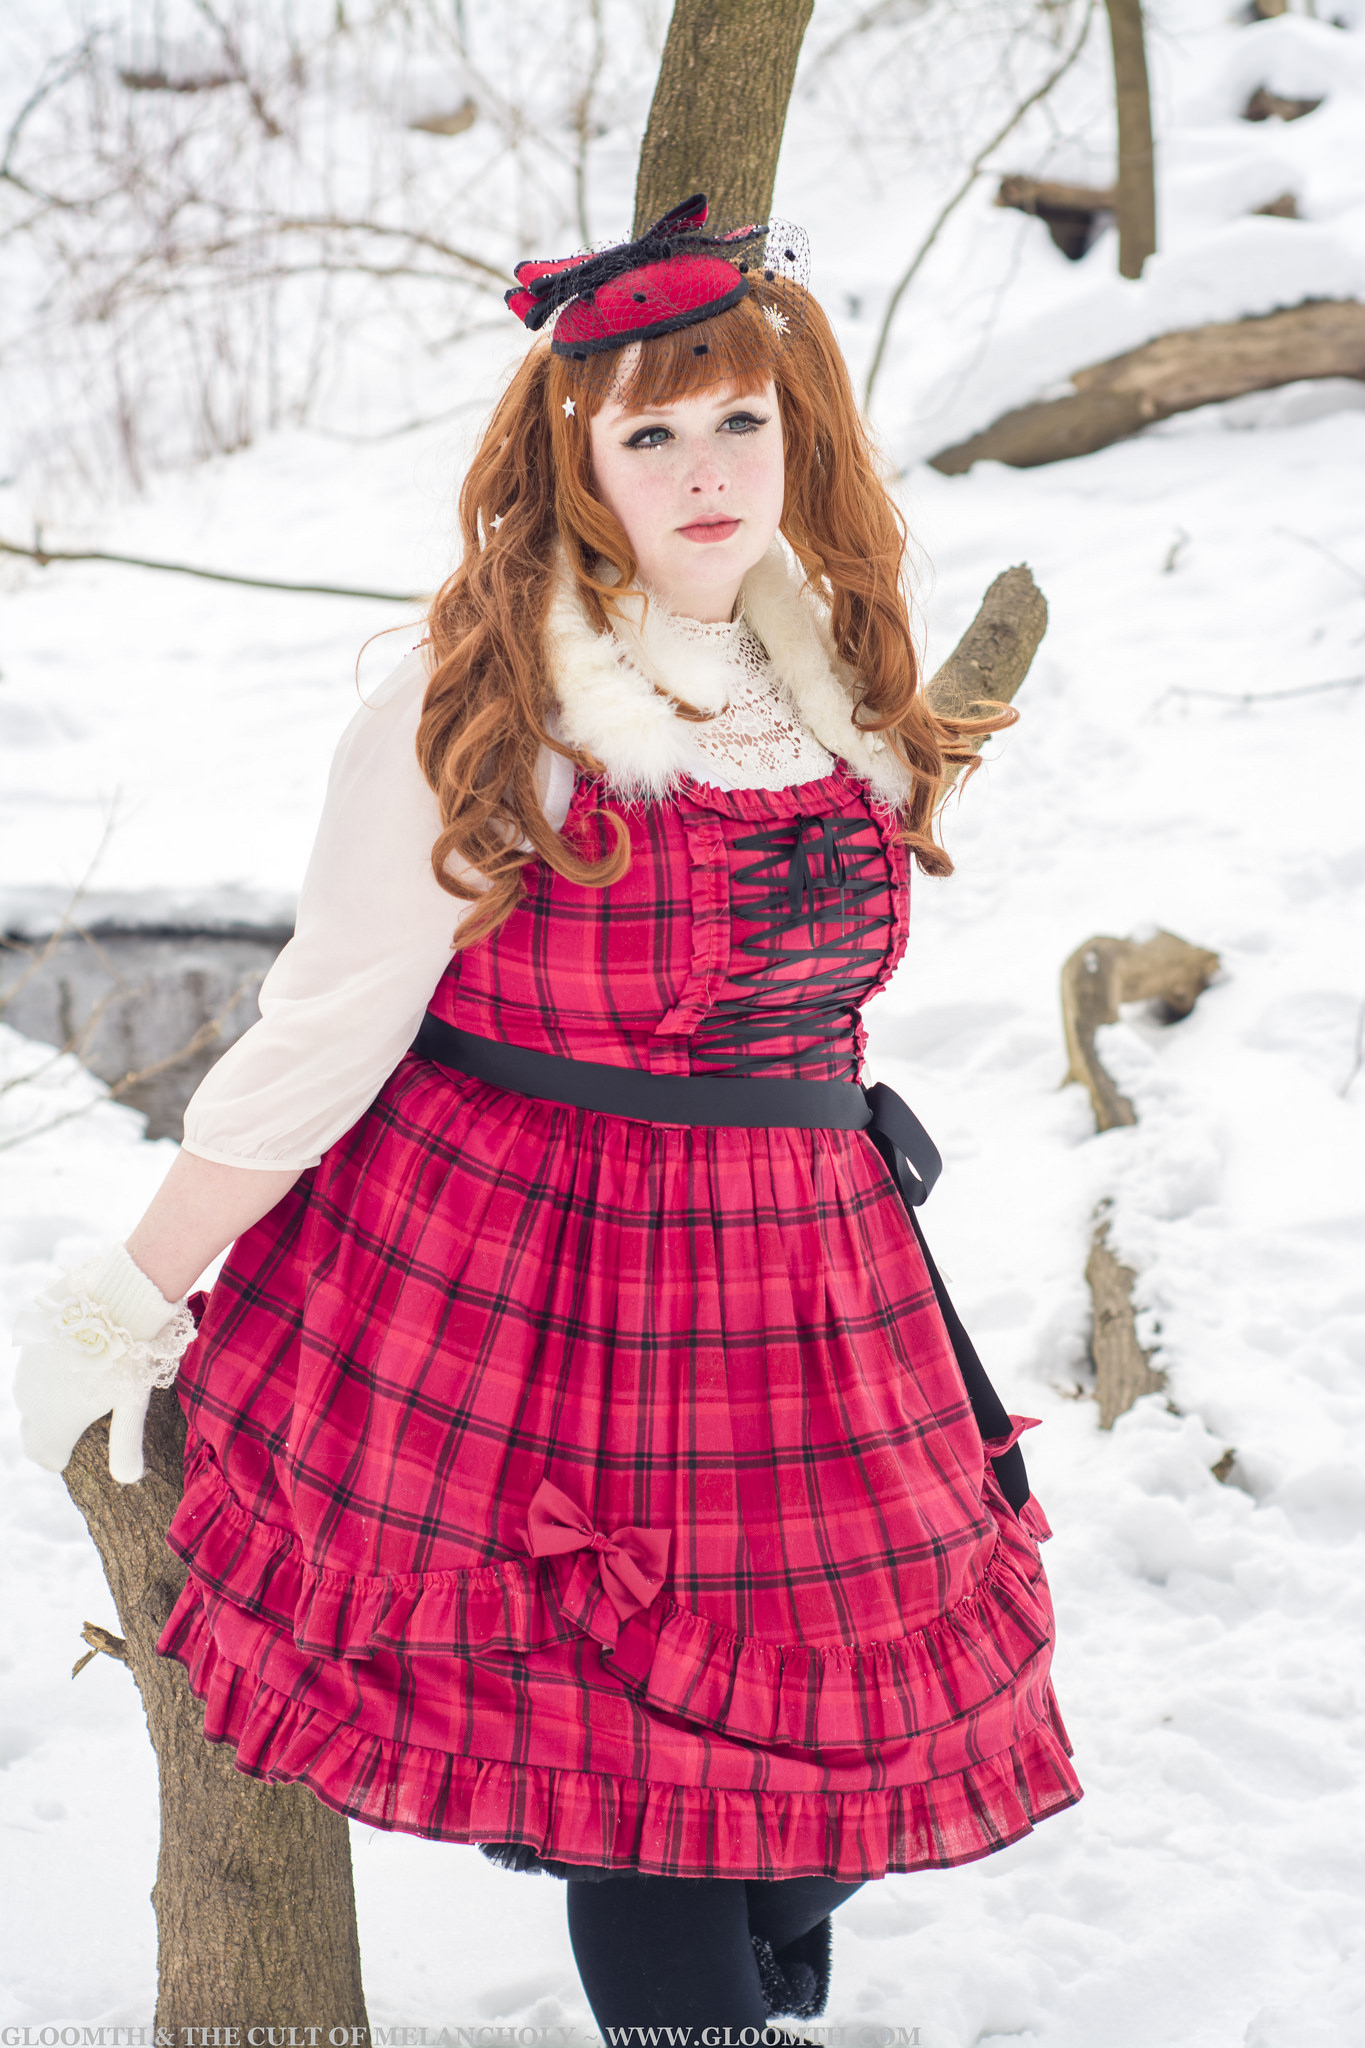 plus size lolita outfit – Gloomth & the Cult of Melancholy